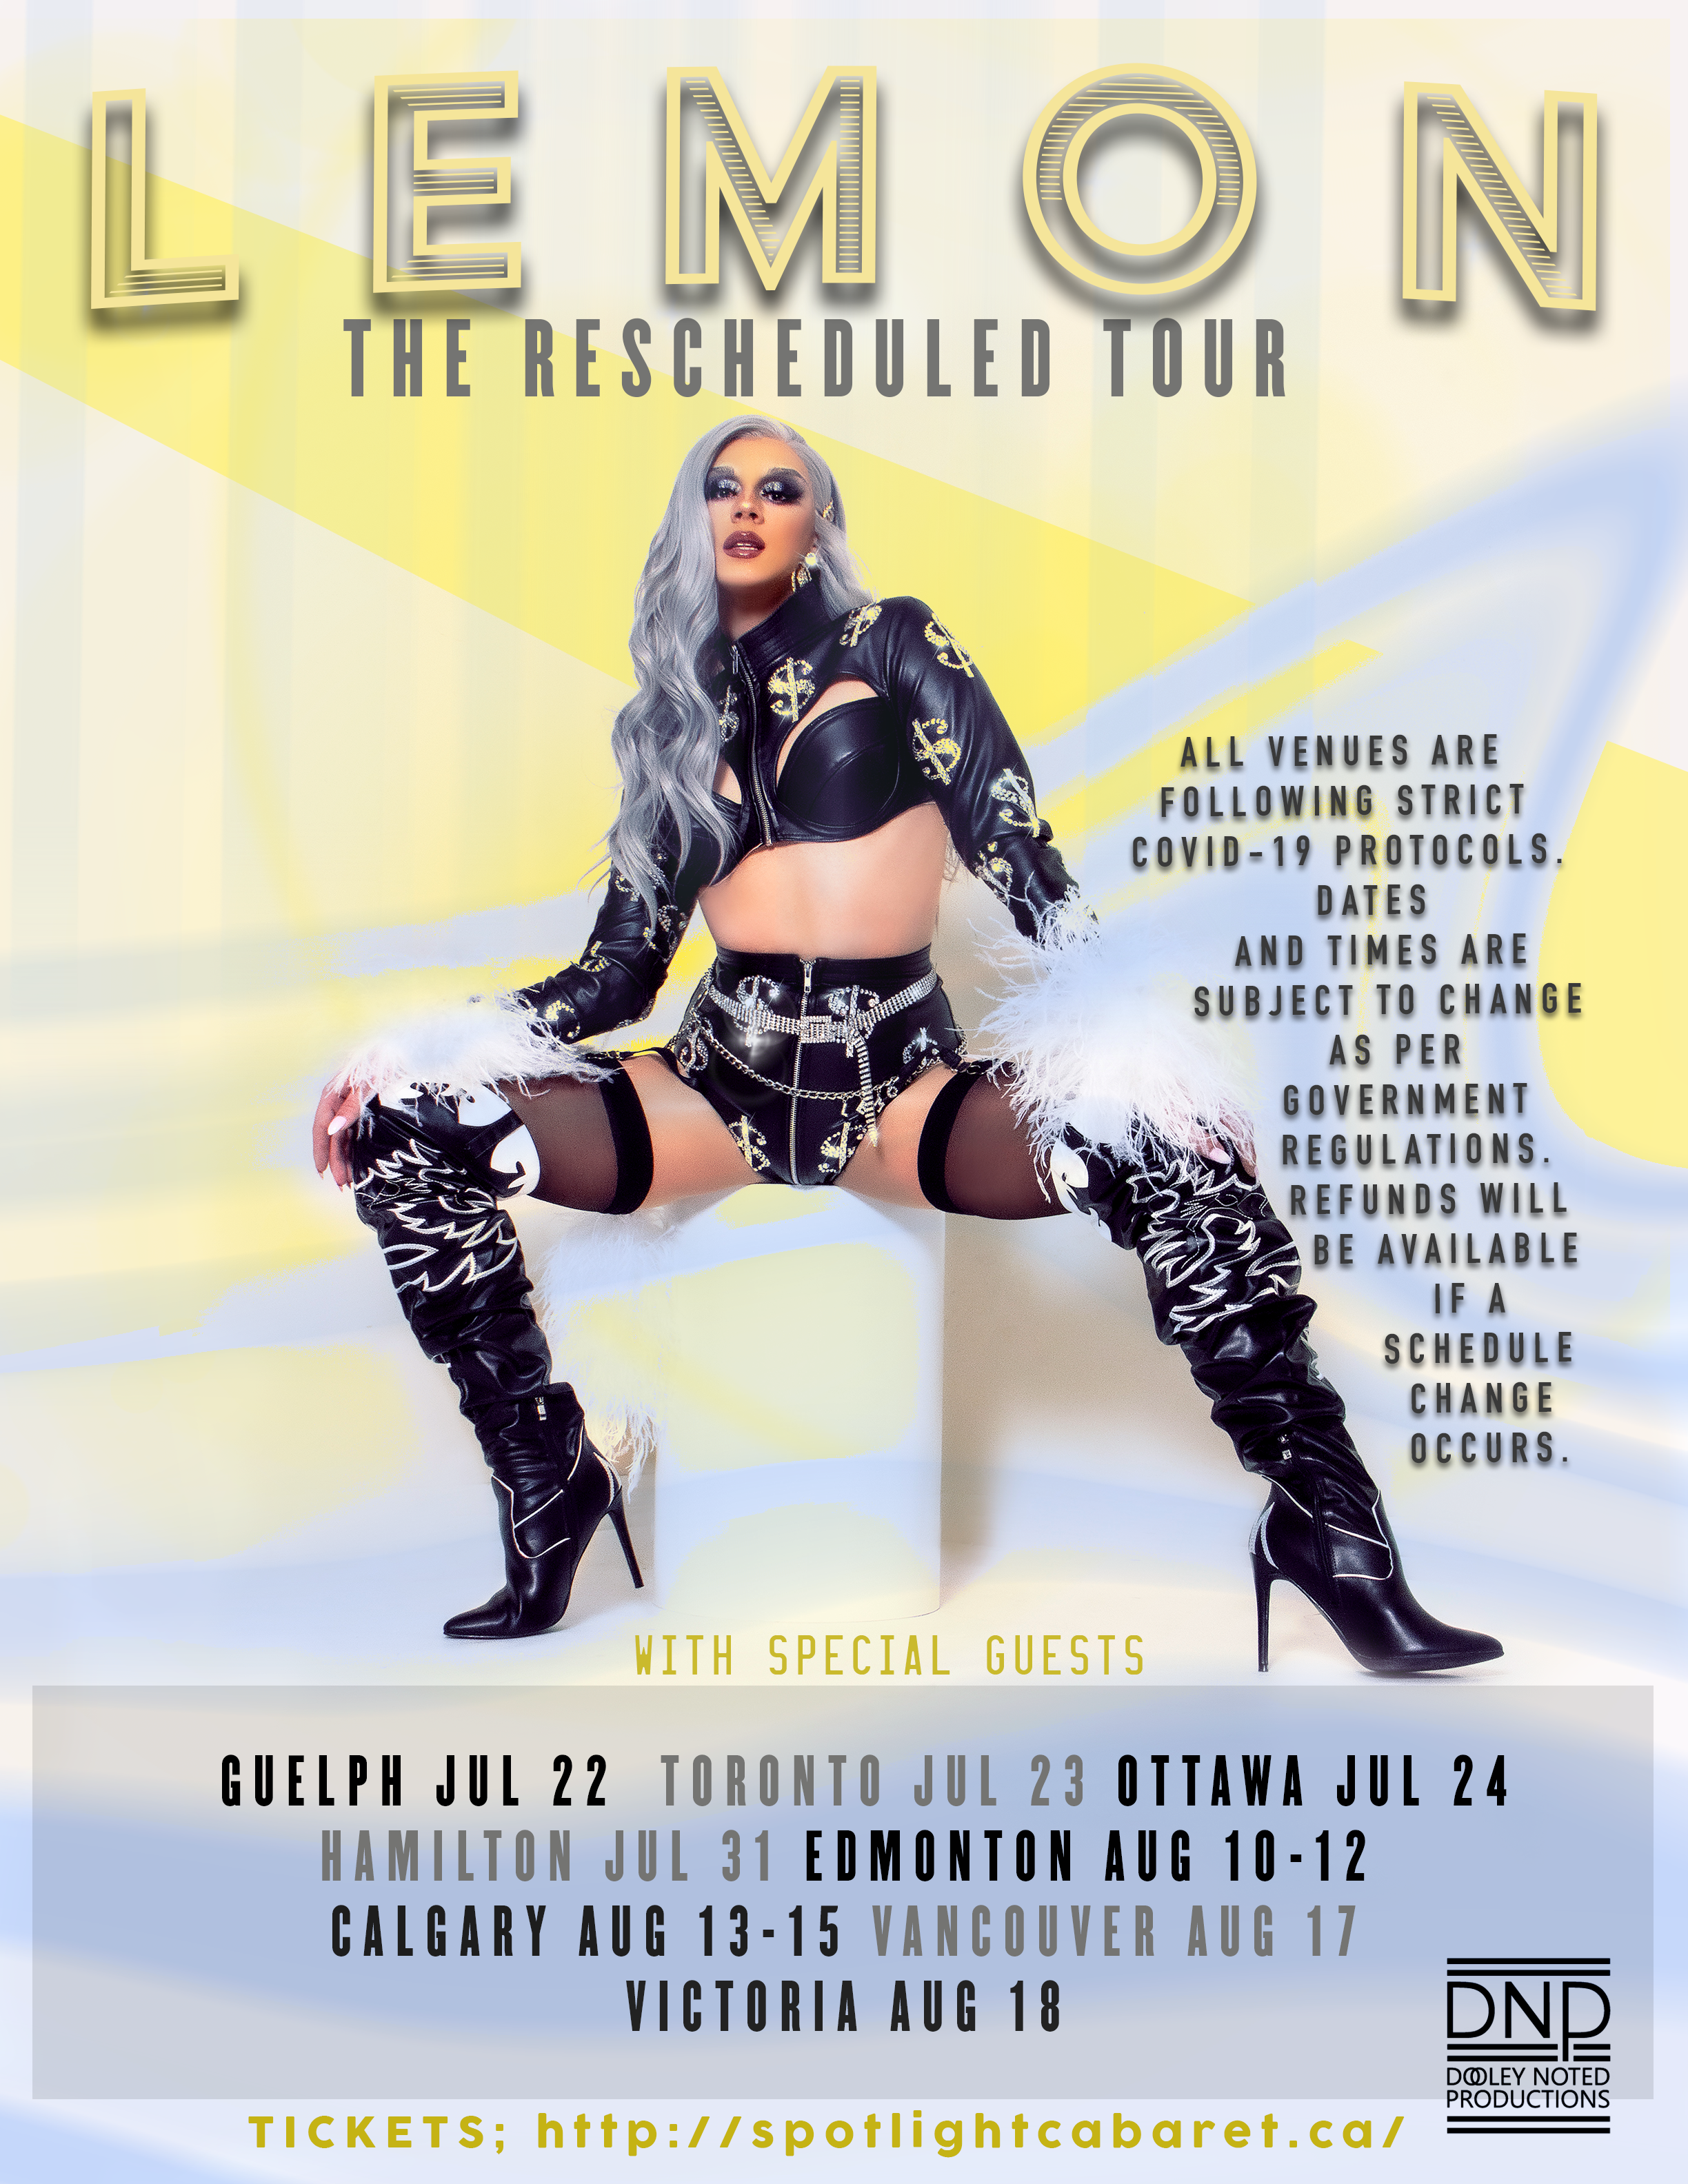 SOLD OUT - LEMON The Rescheduled Tour